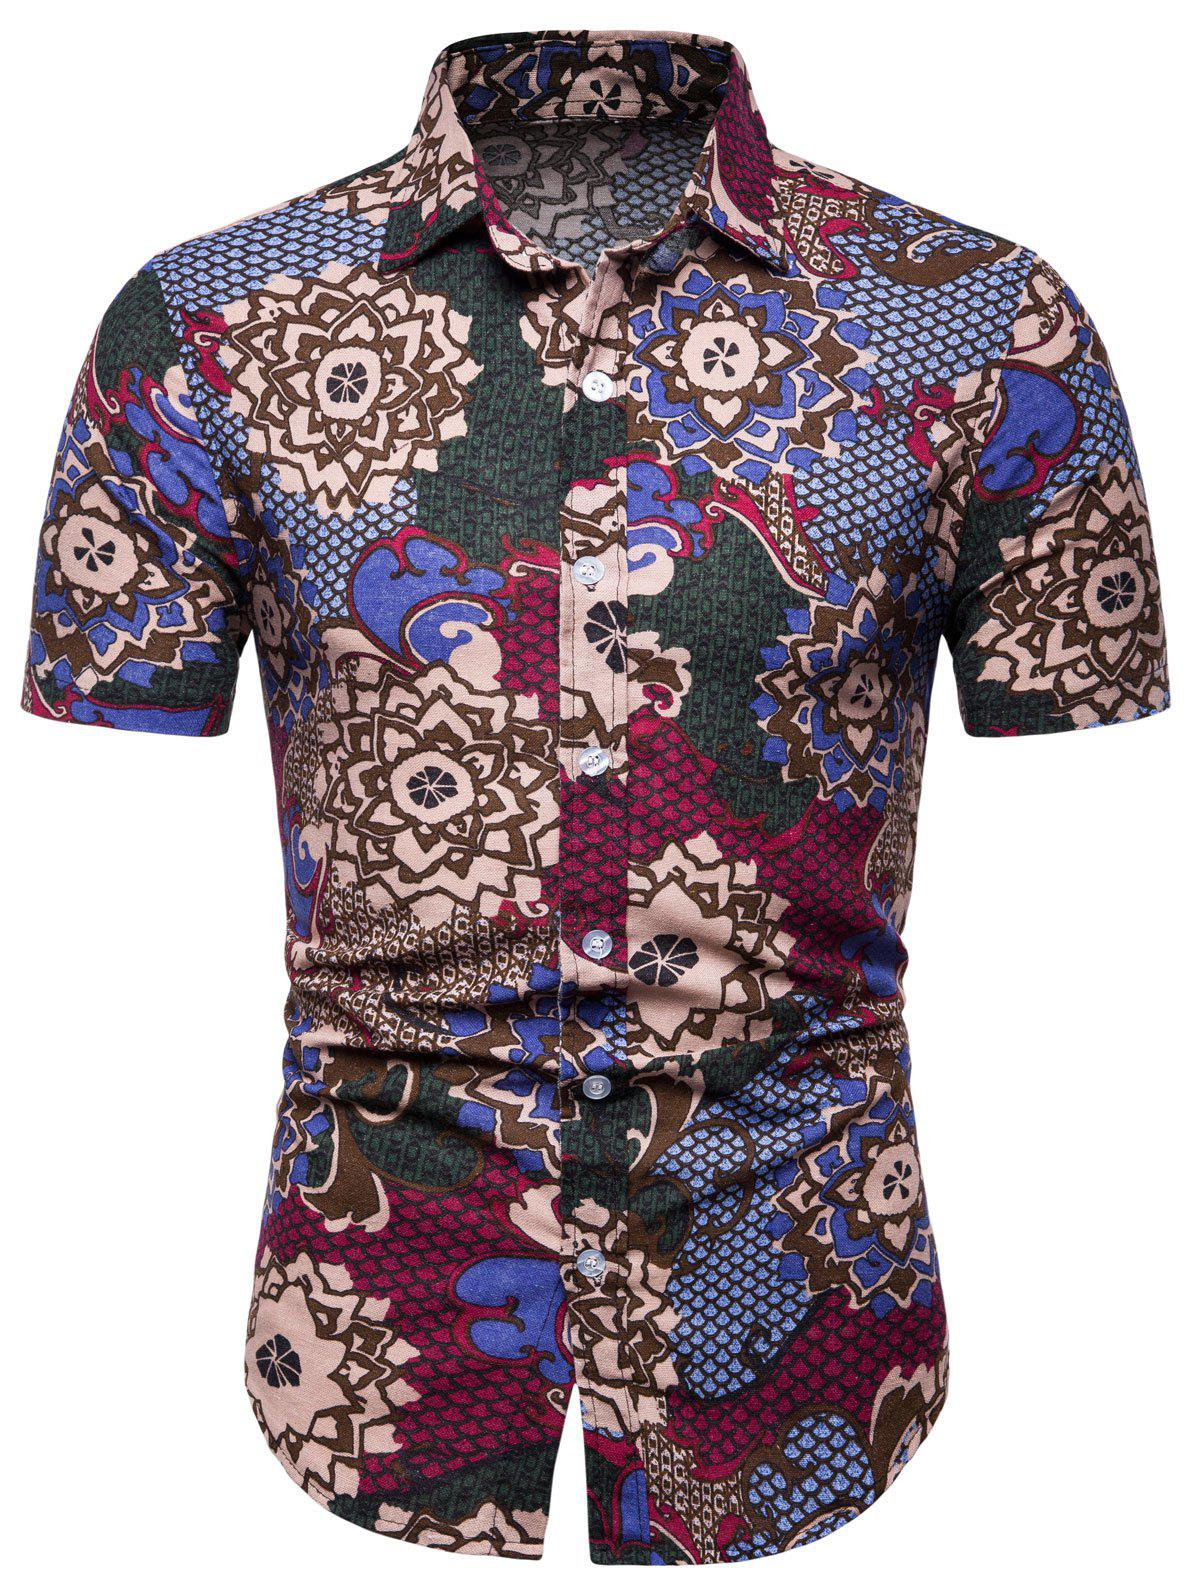 New Flowers and Fish Scale Print Short Sleeve Shirt